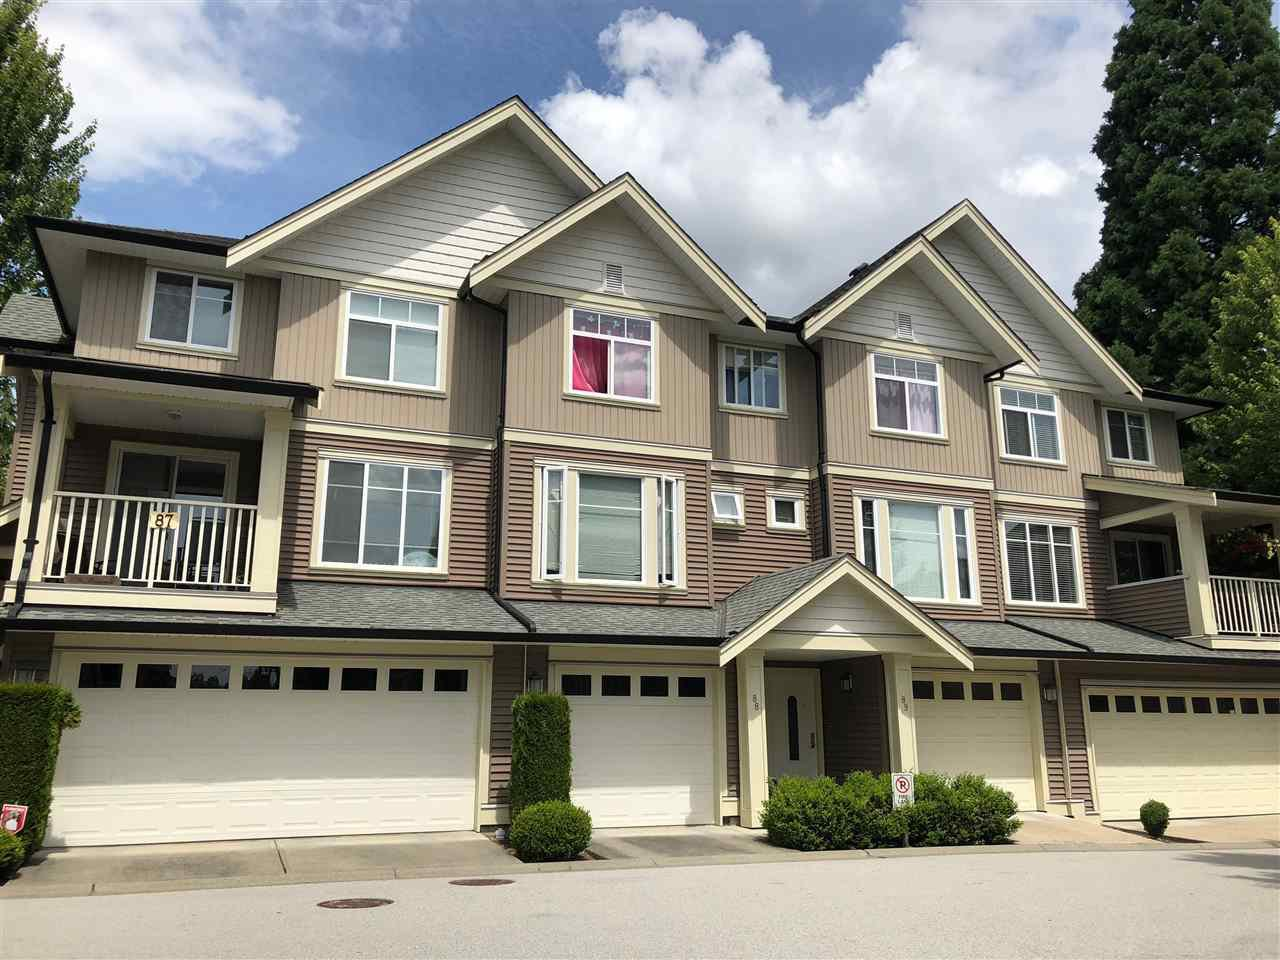 """Main Photo: 88 6575 192 Street in Surrey: Clayton Townhouse for sale in """"IXIA"""" (Cloverdale)  : MLS®# R2284472"""